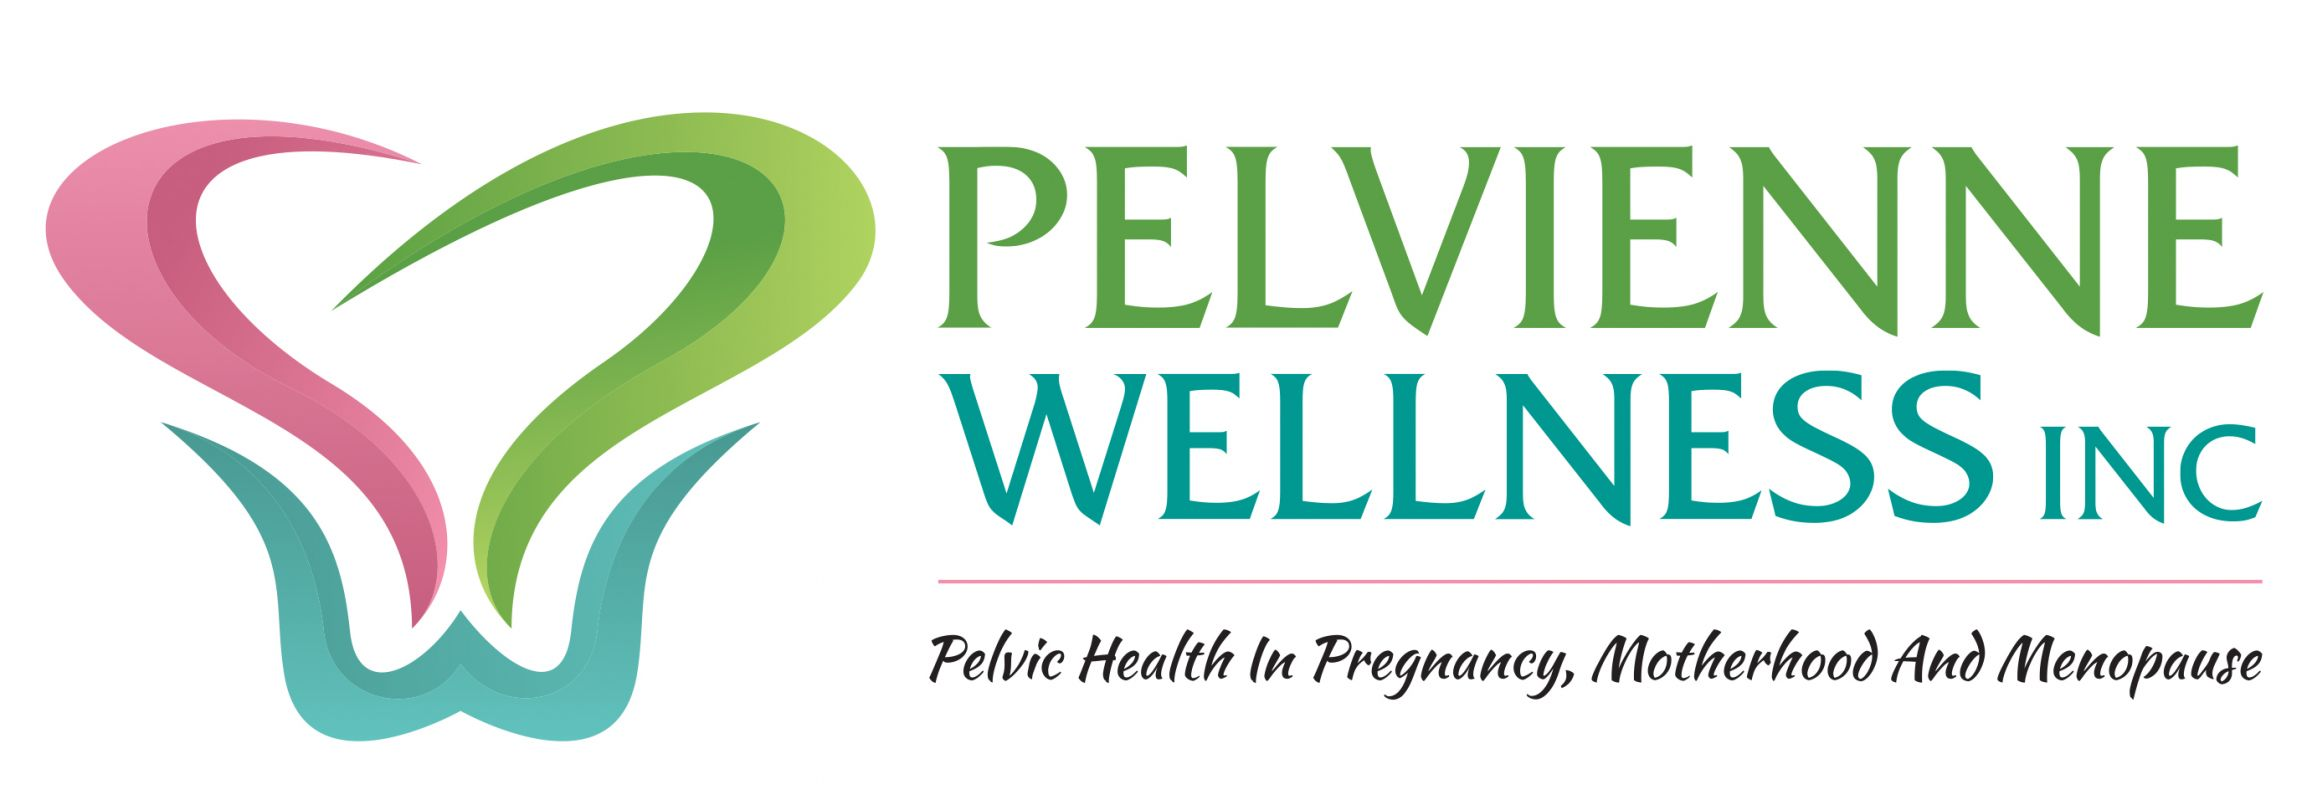 Pelvienne Wellness & Bellies Inc. logo